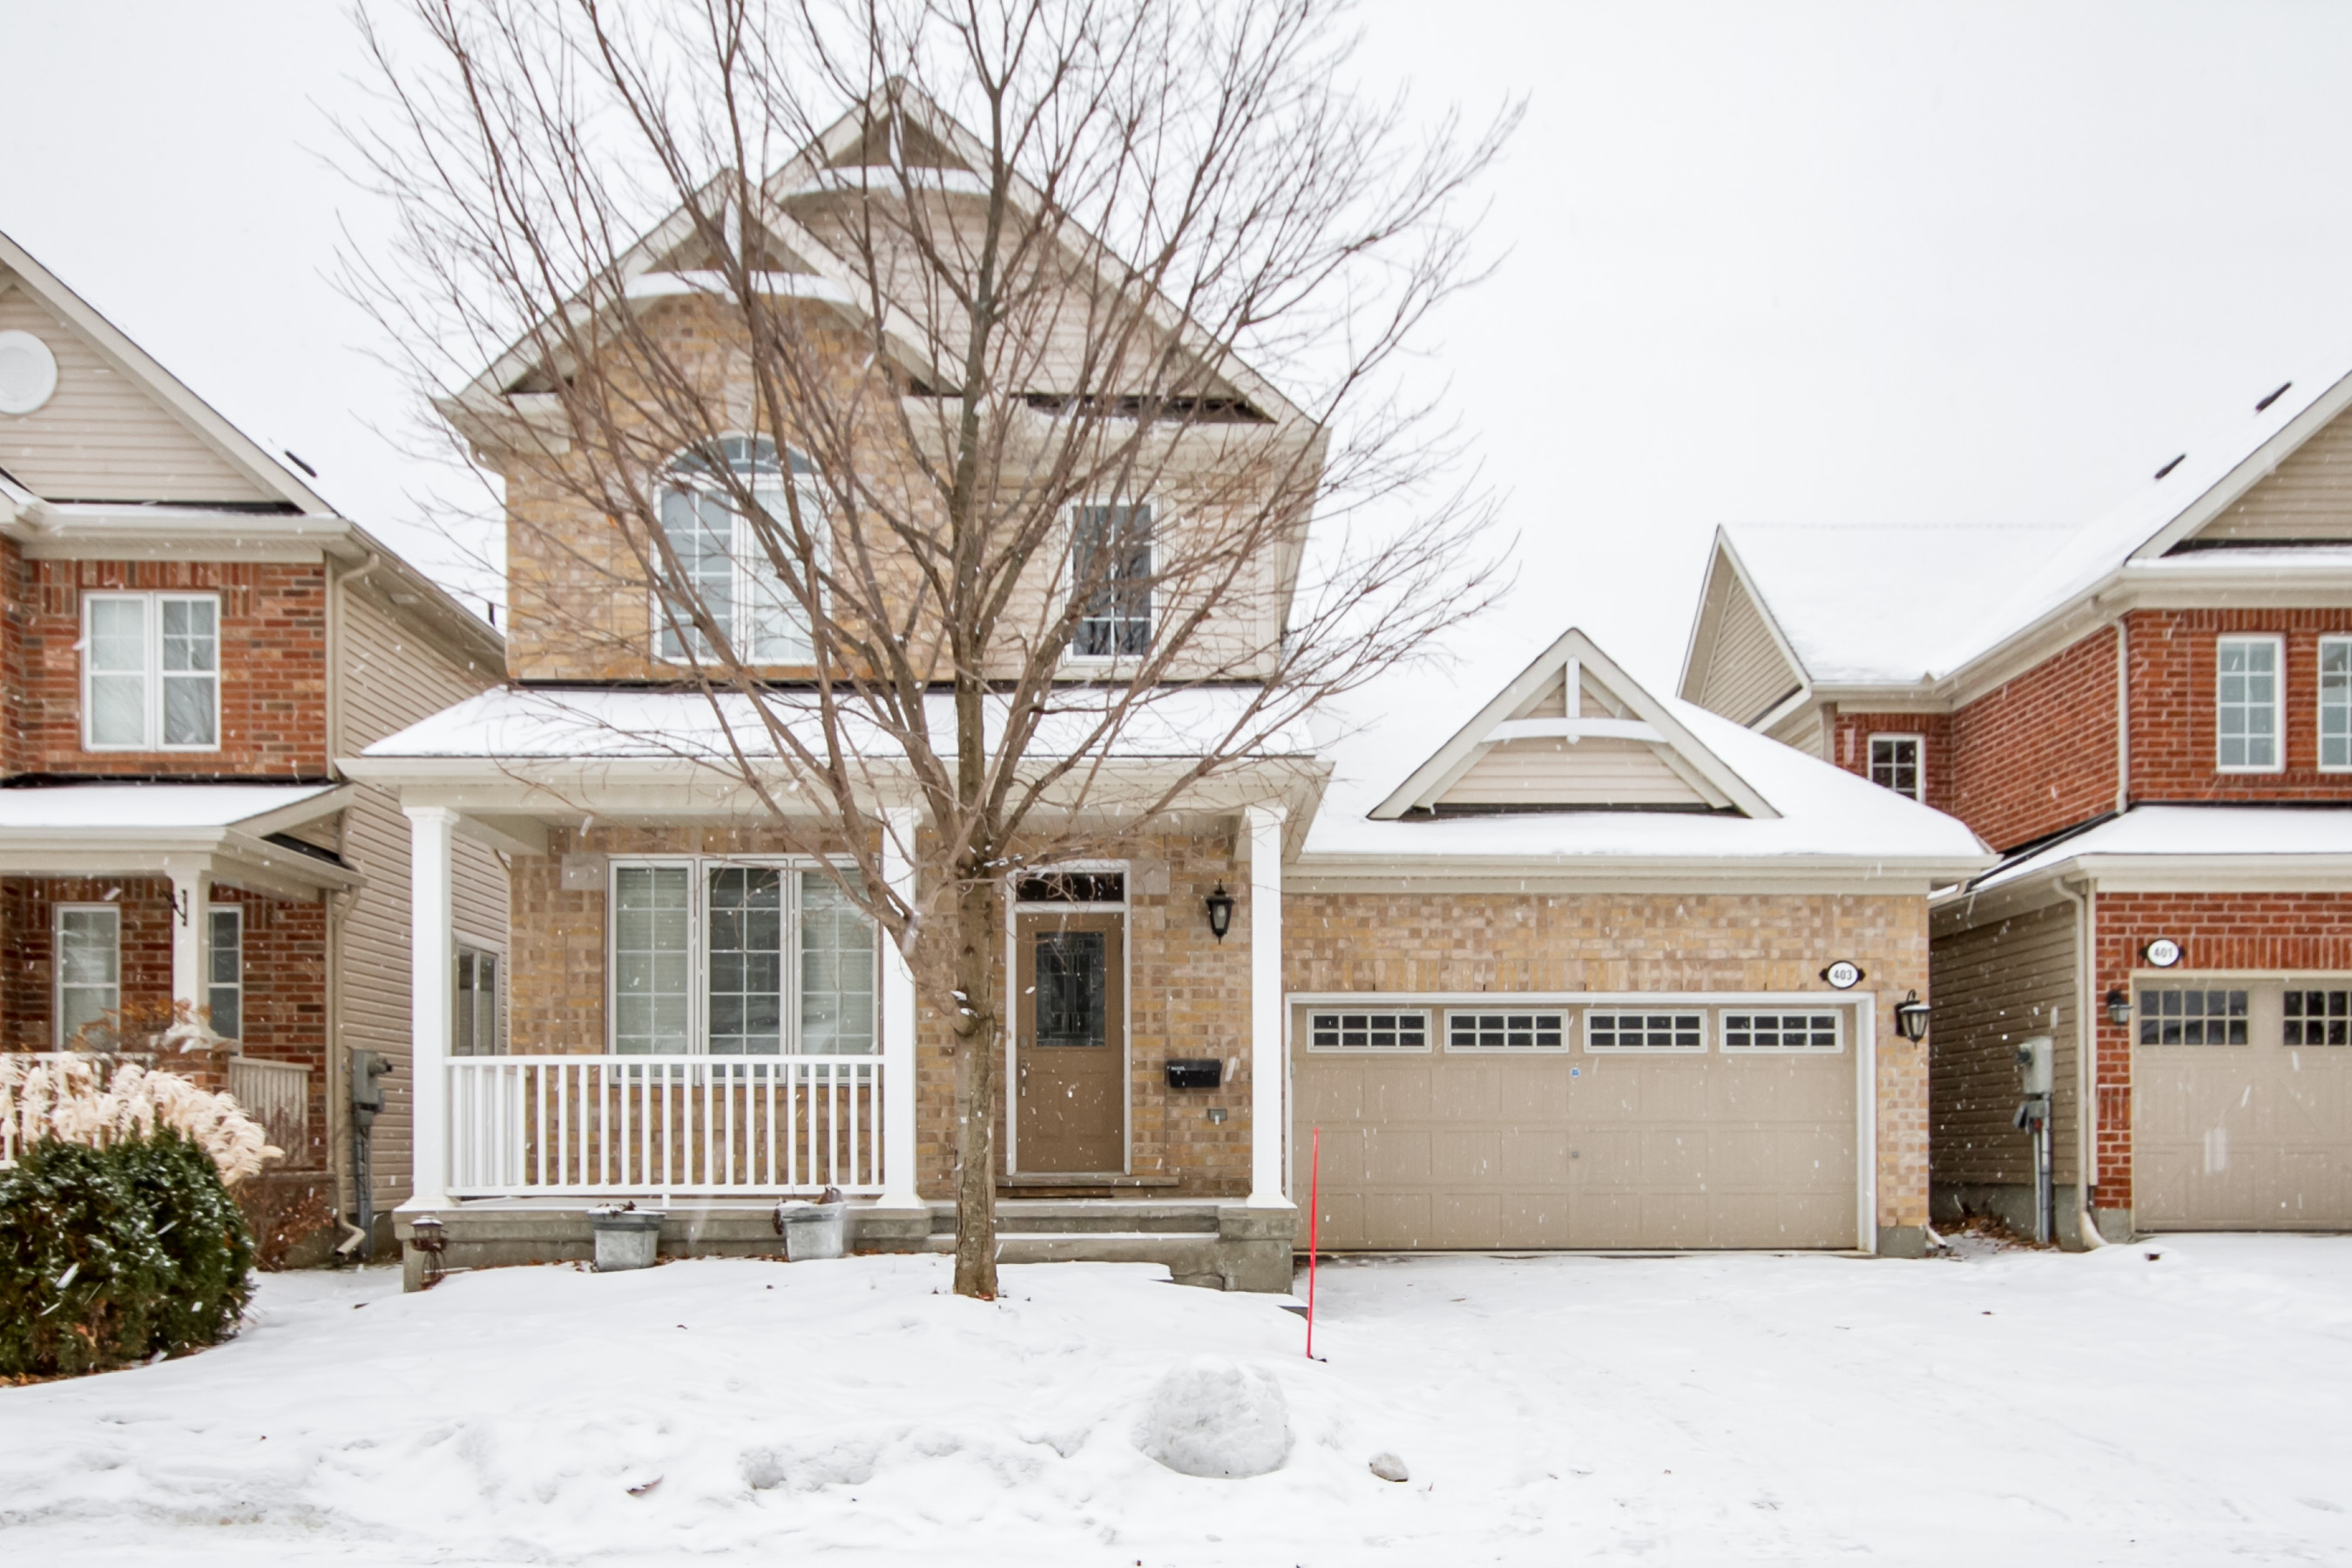 403 Etesian St - Gorgeous and Unique Layout in this 3 Bedroom Detached Home in Stittsville area!